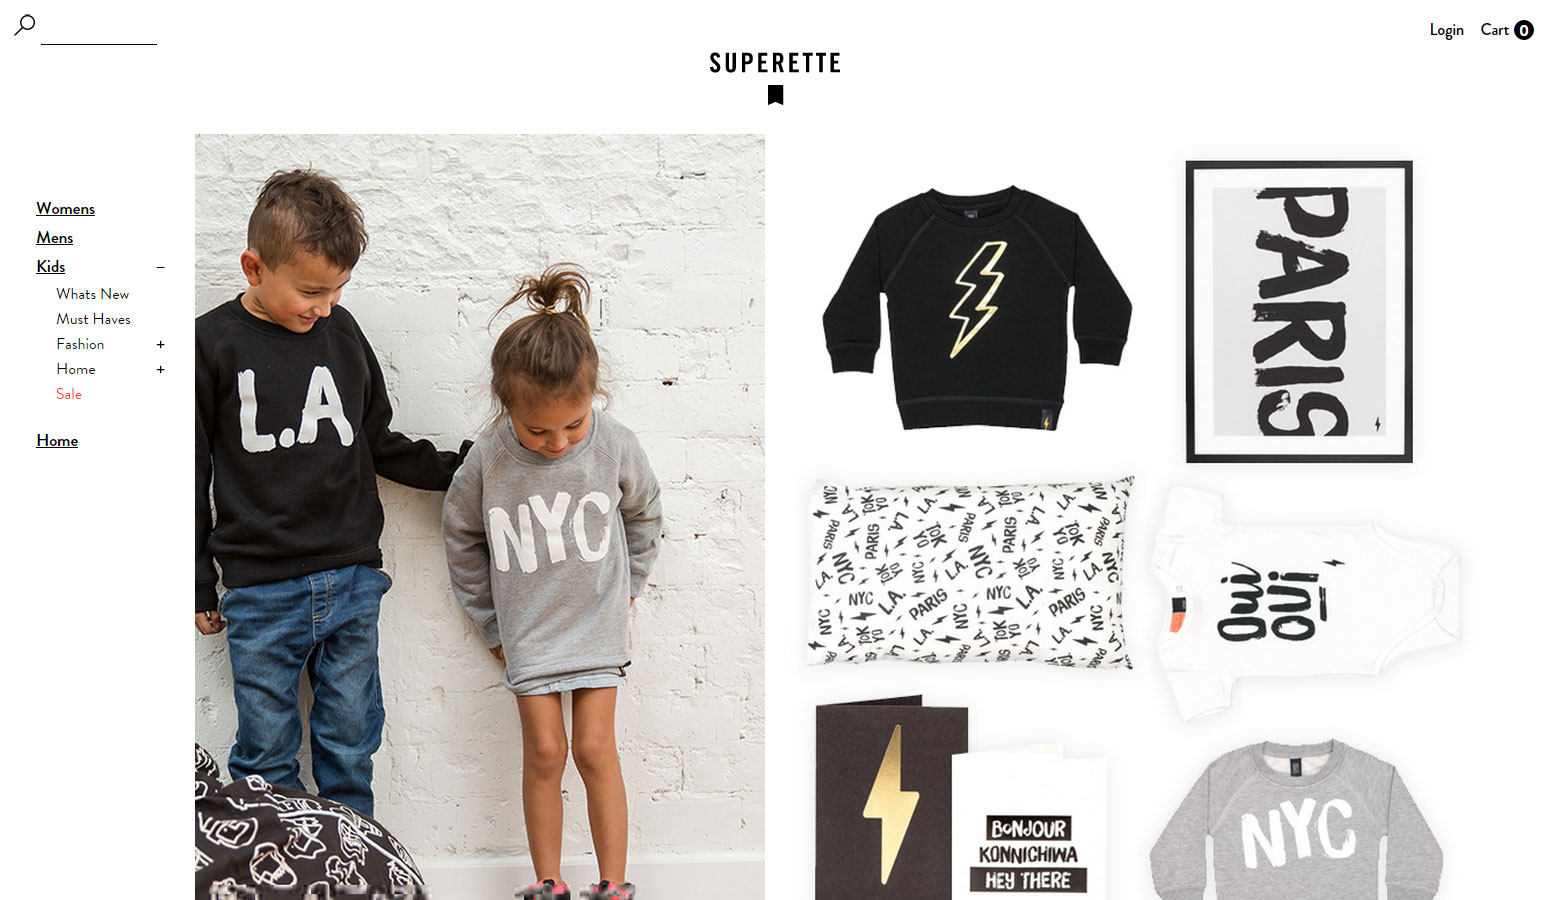 Superette - Website of the Day